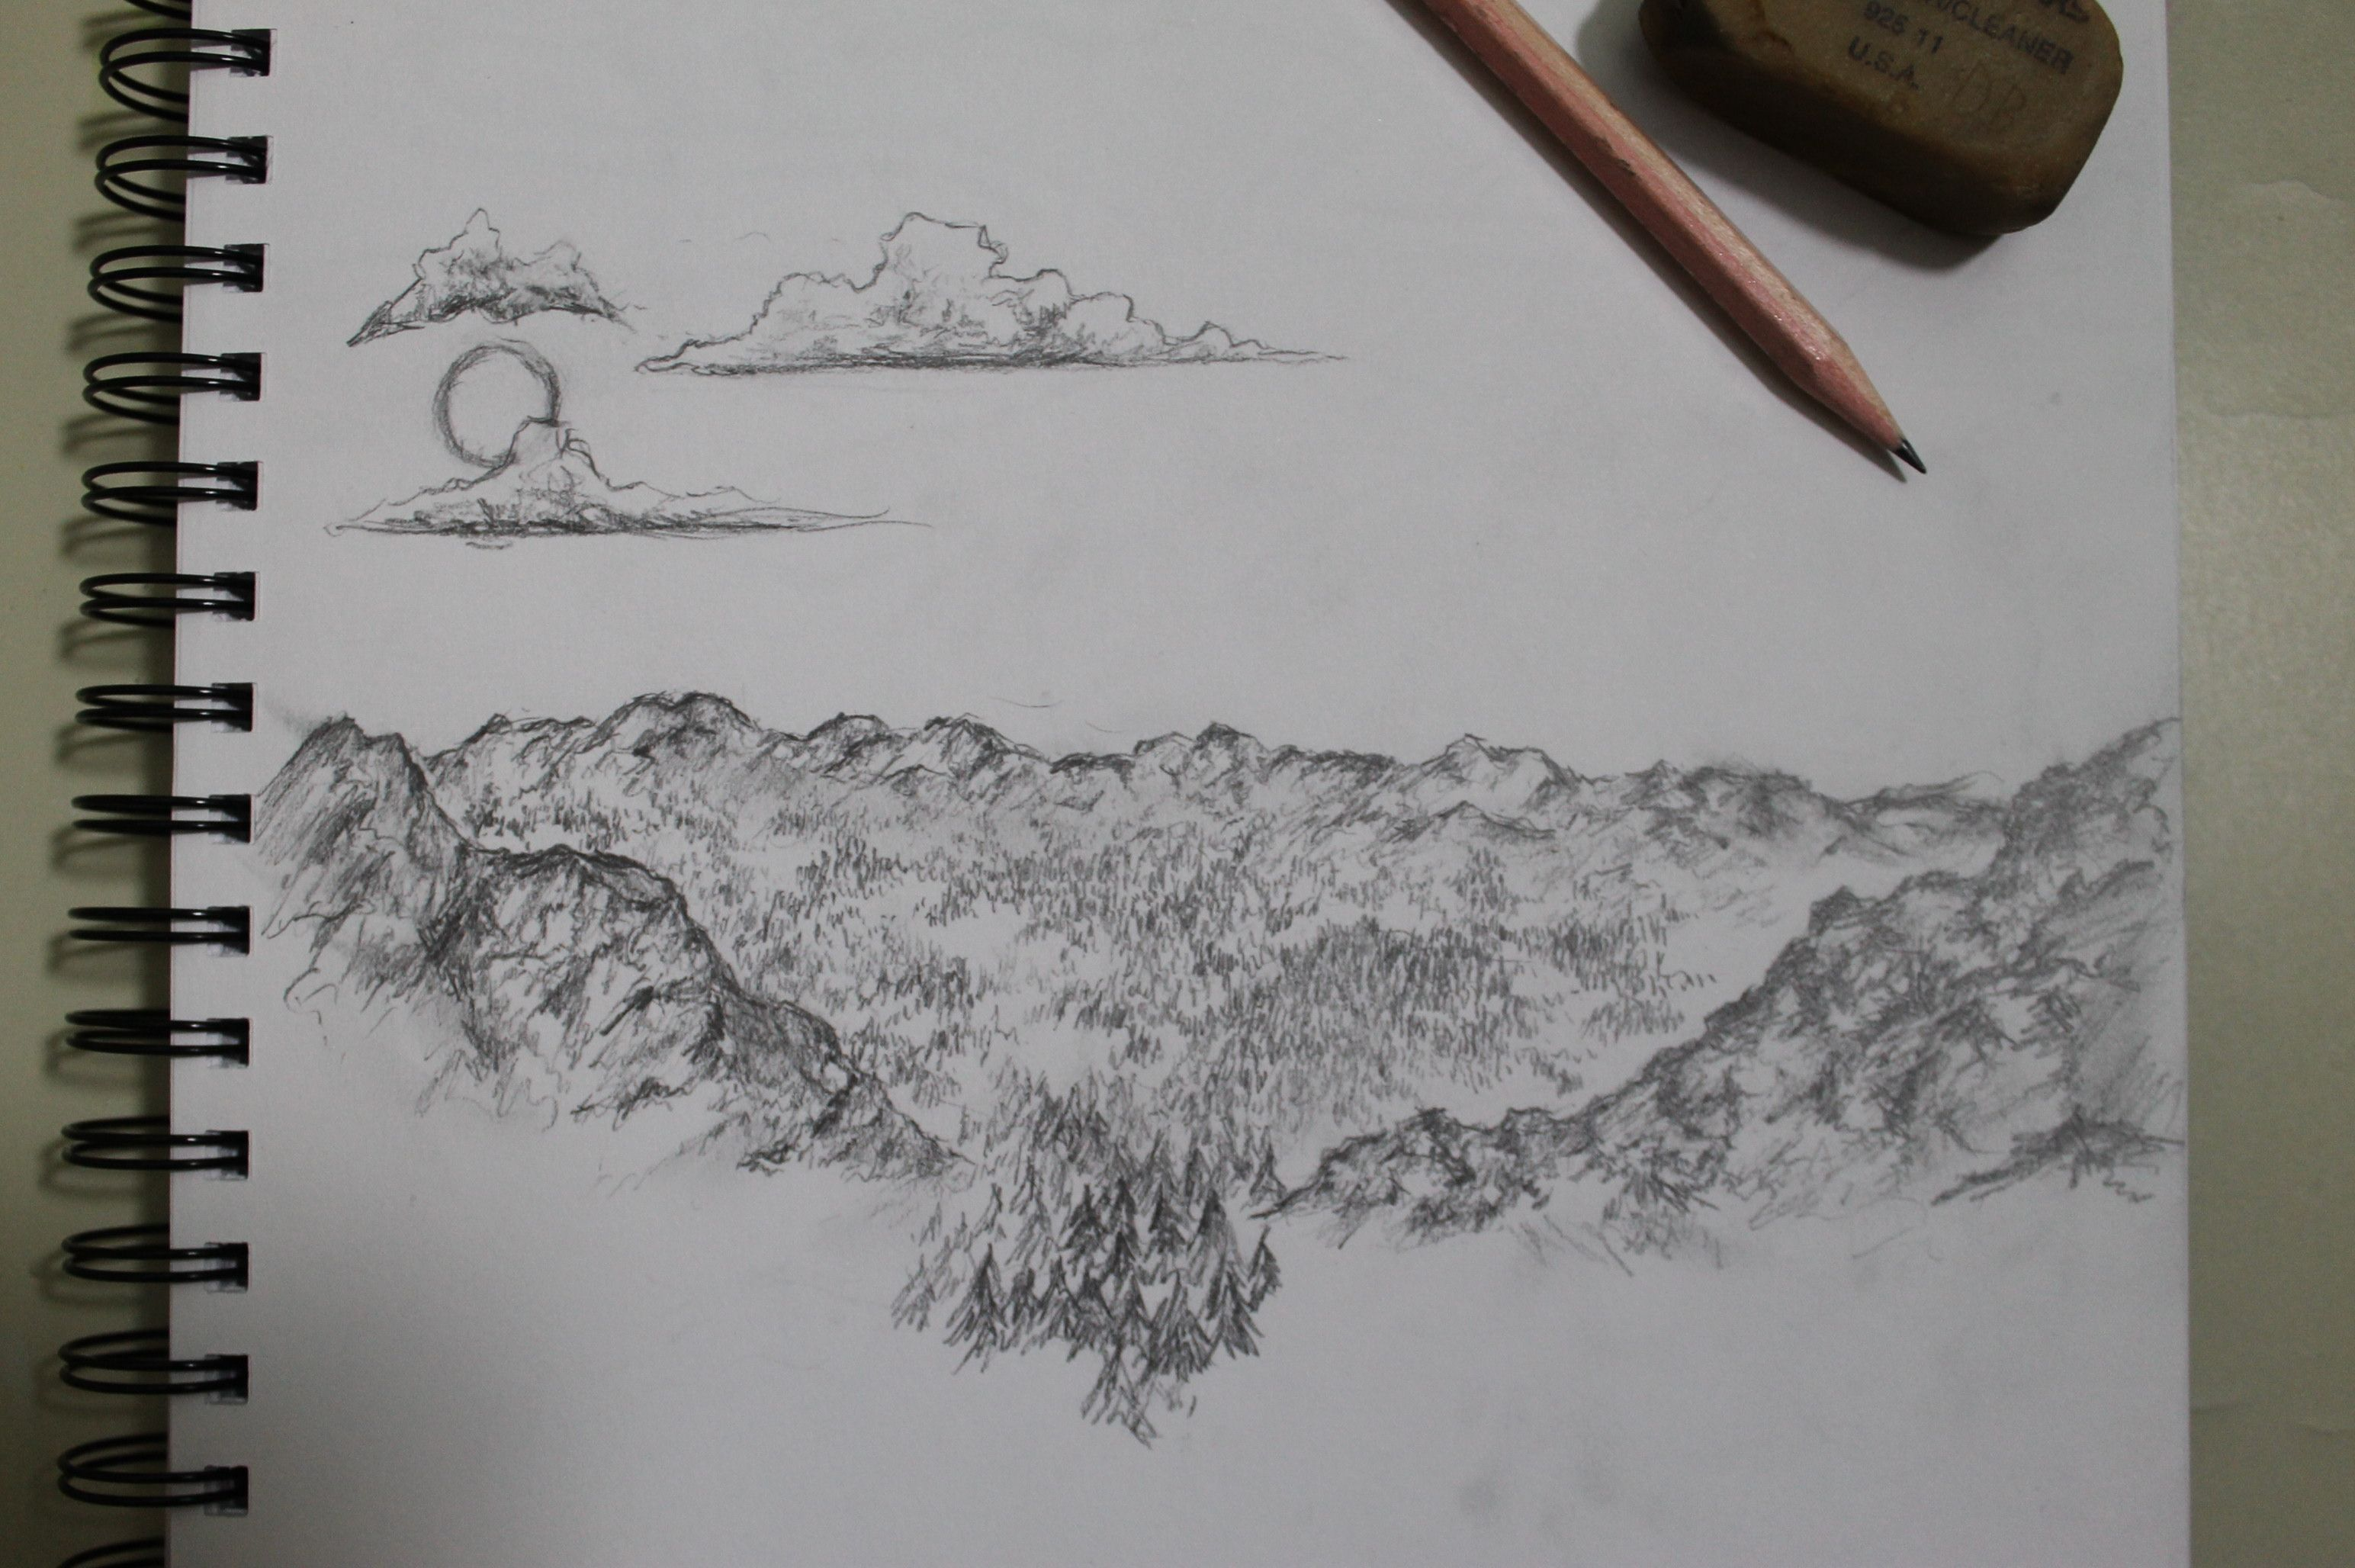 Heres a little landscape i drew offhand at school some time. I was just kinda bored at the time.